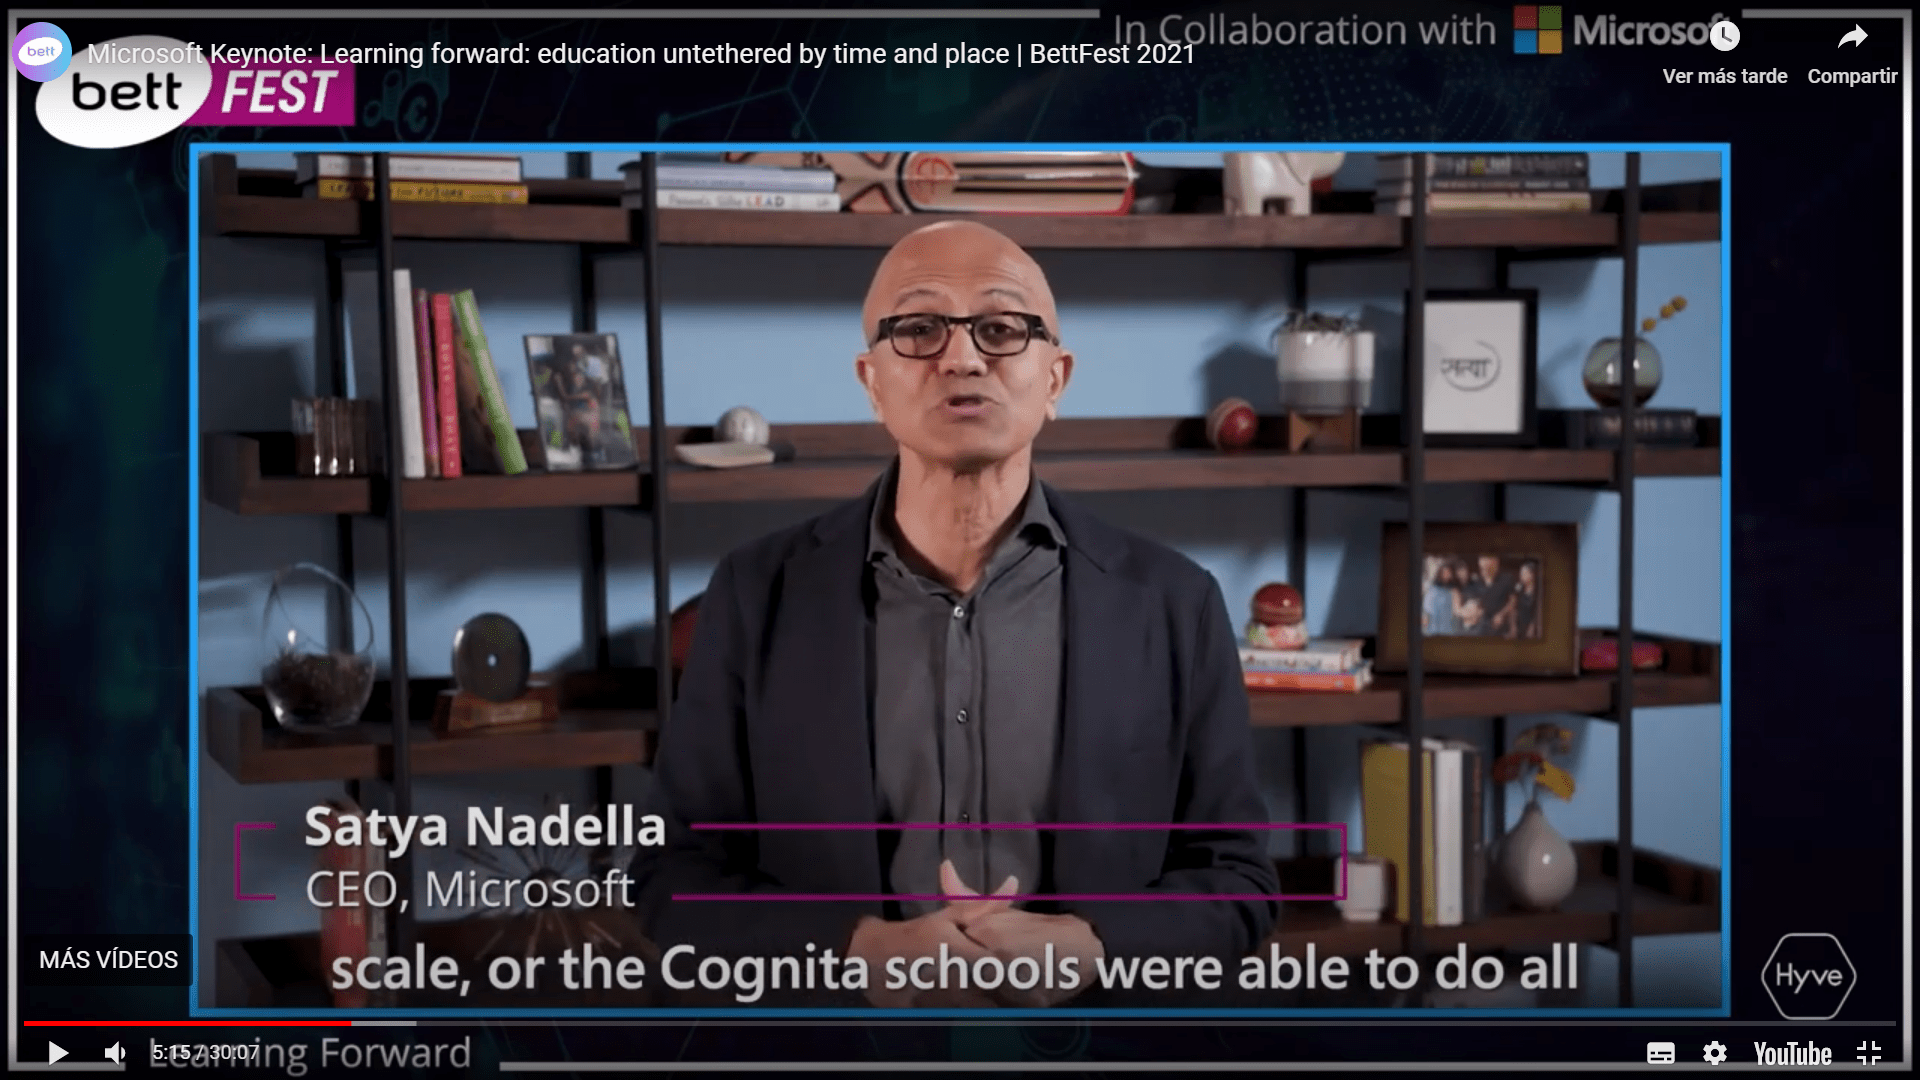 CEO Microsoft highlights the incredible work done by Cognita Schools during pandemic